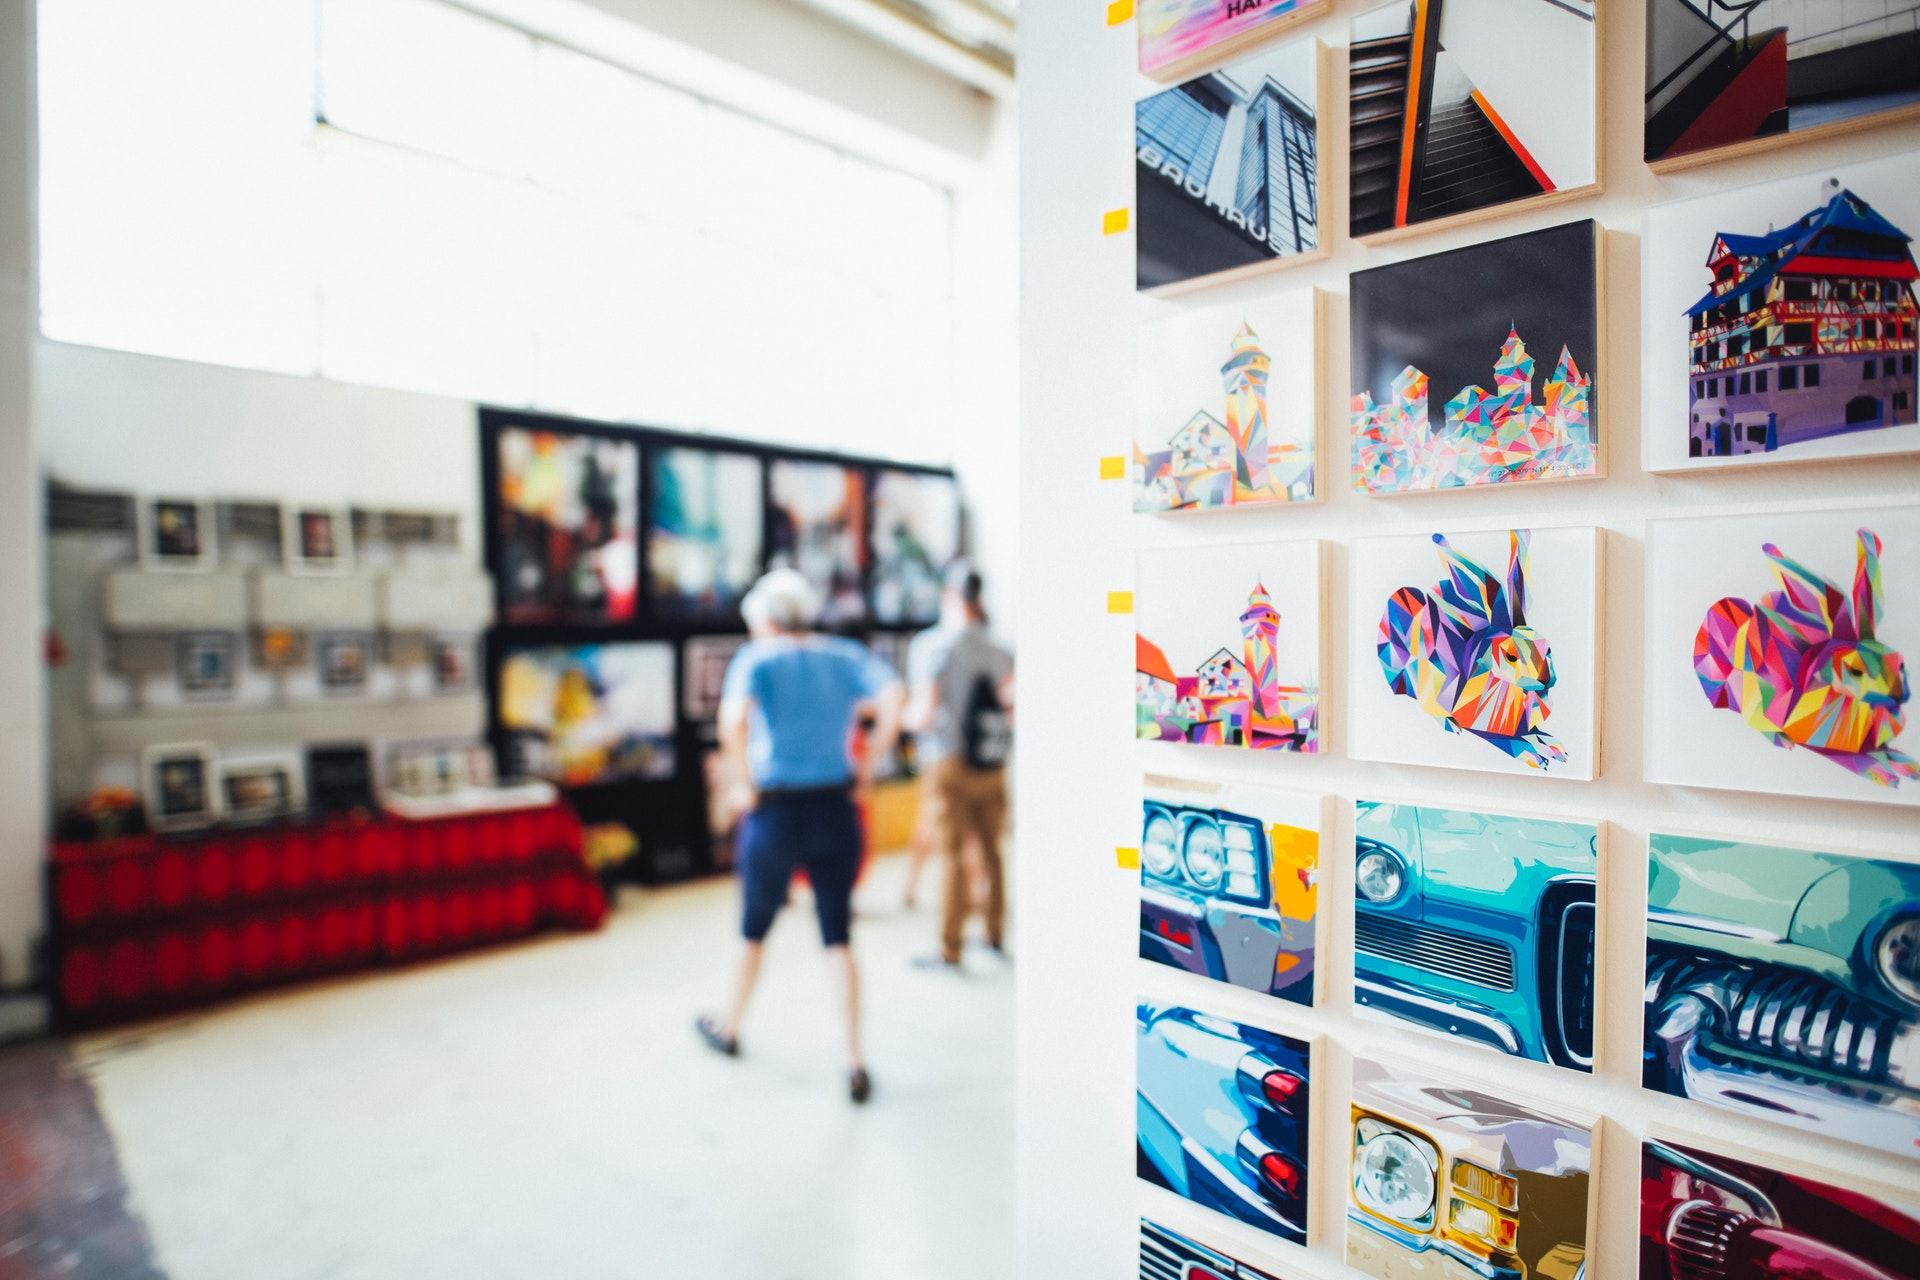 art week joburg - image via pexels